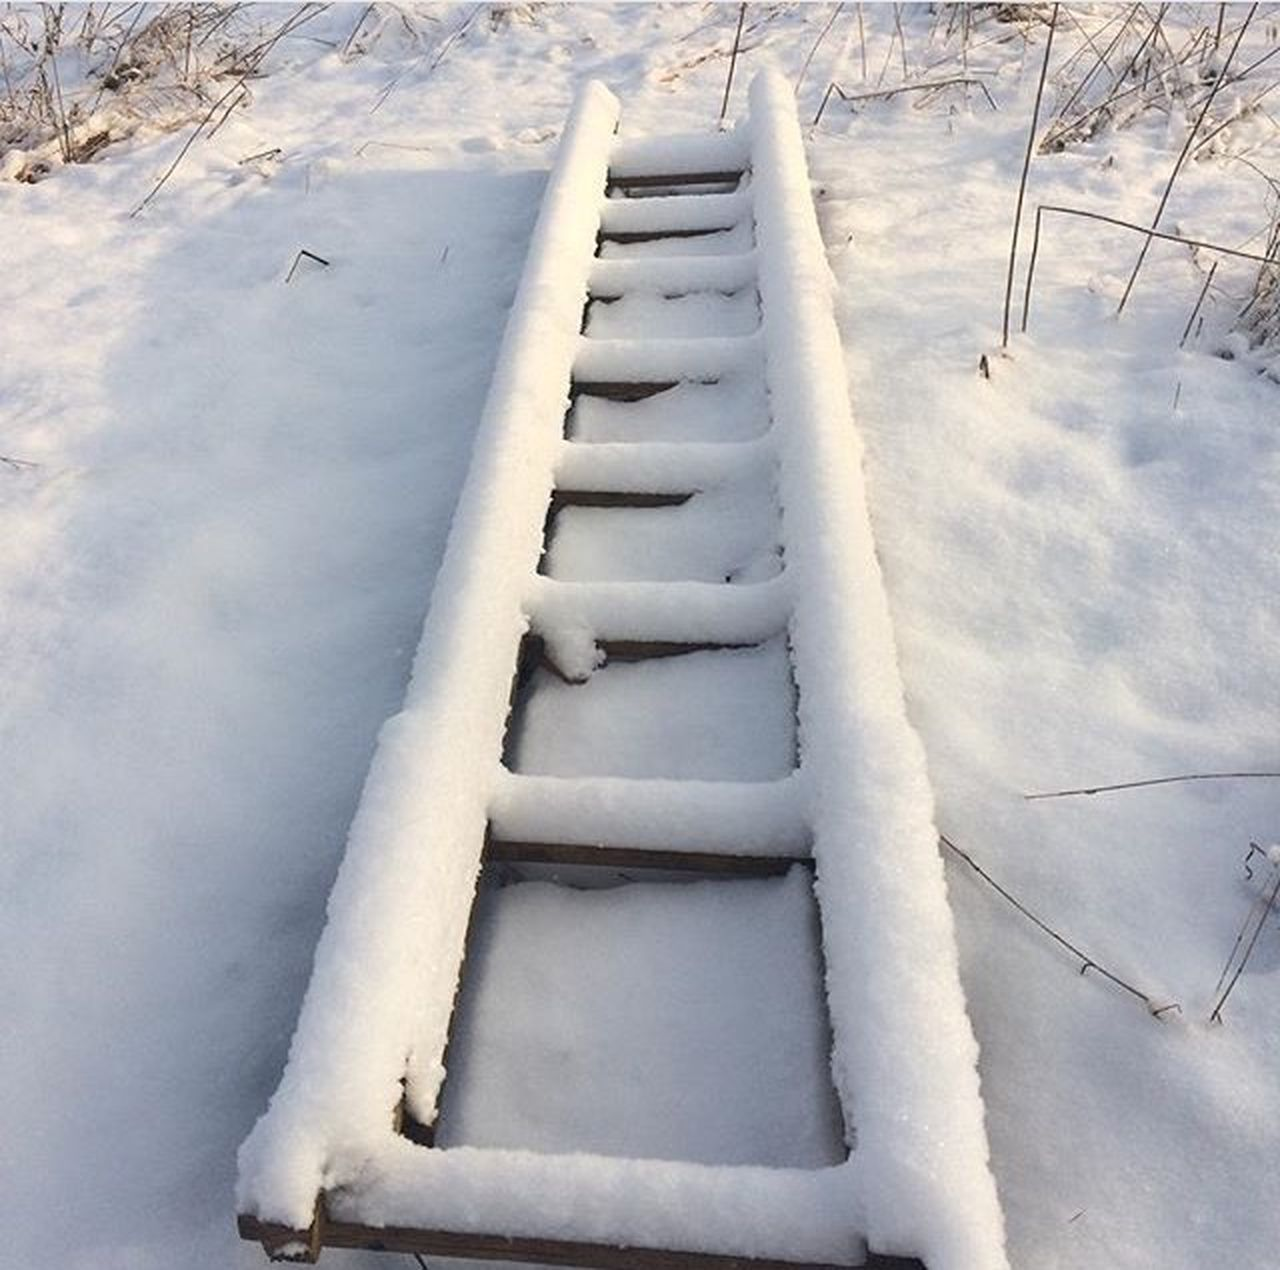 winter, snow, cold temperature, white color, white, weather, day, high angle view, outdoors, nature, no people, the way forward